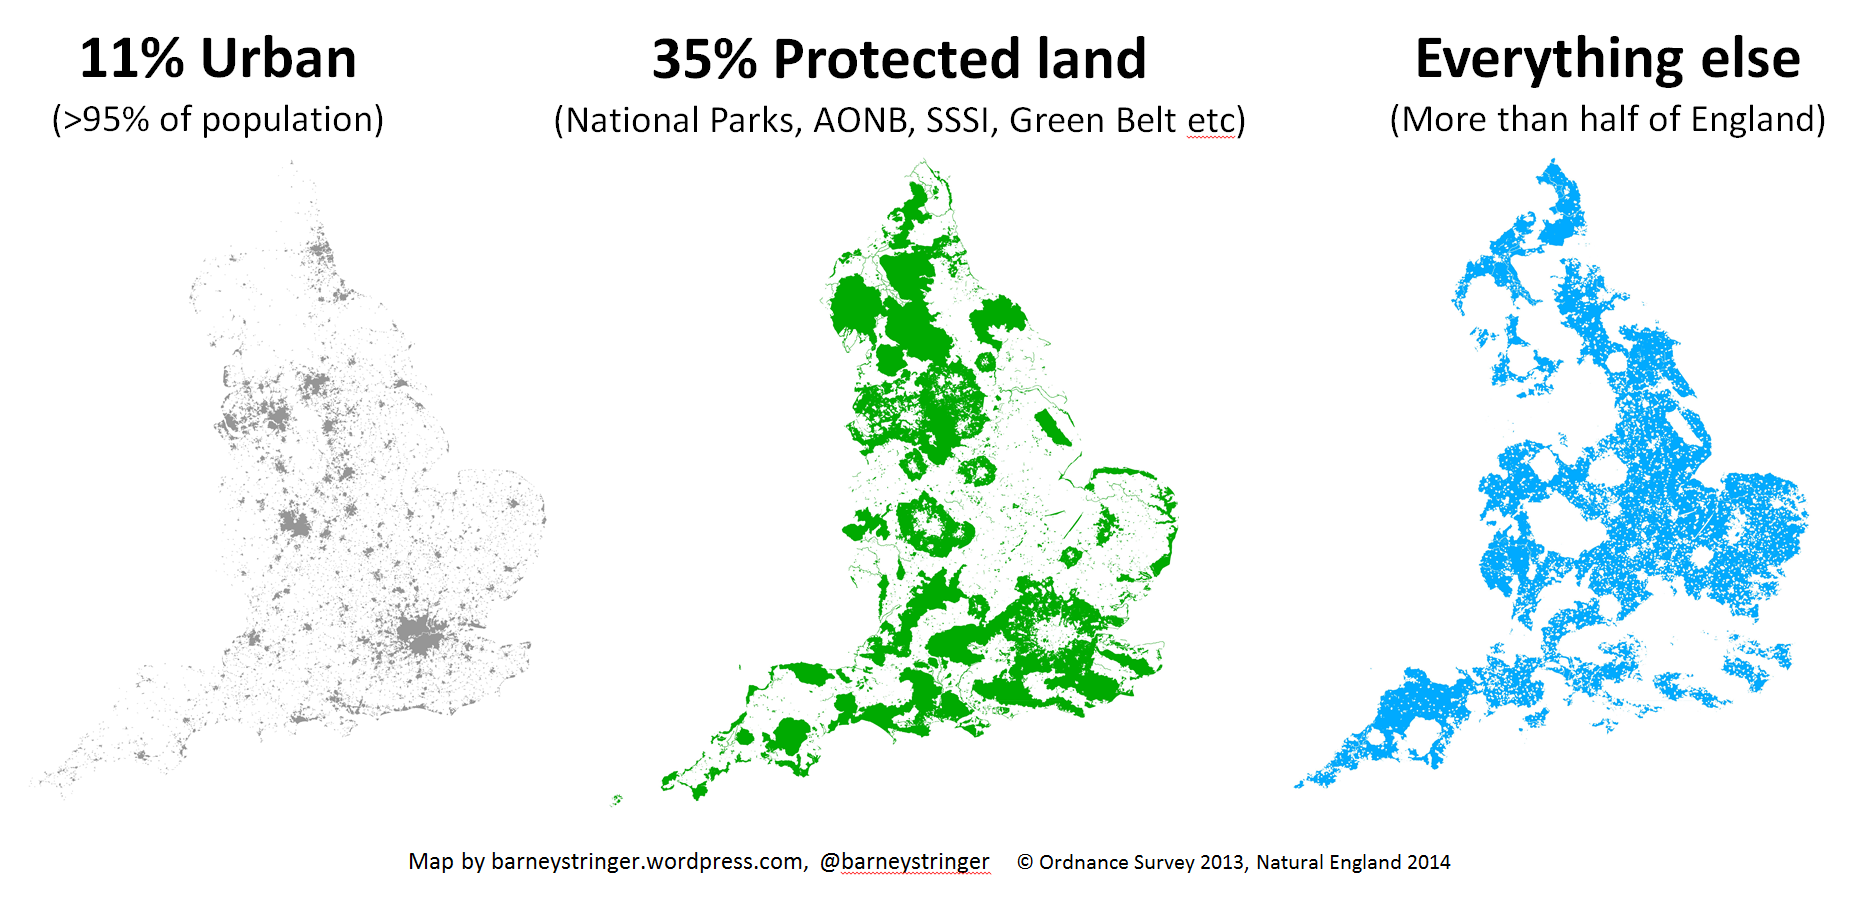 National Parks Uk Map.How Much Of England S Countryside Is Protected Barney S Blog